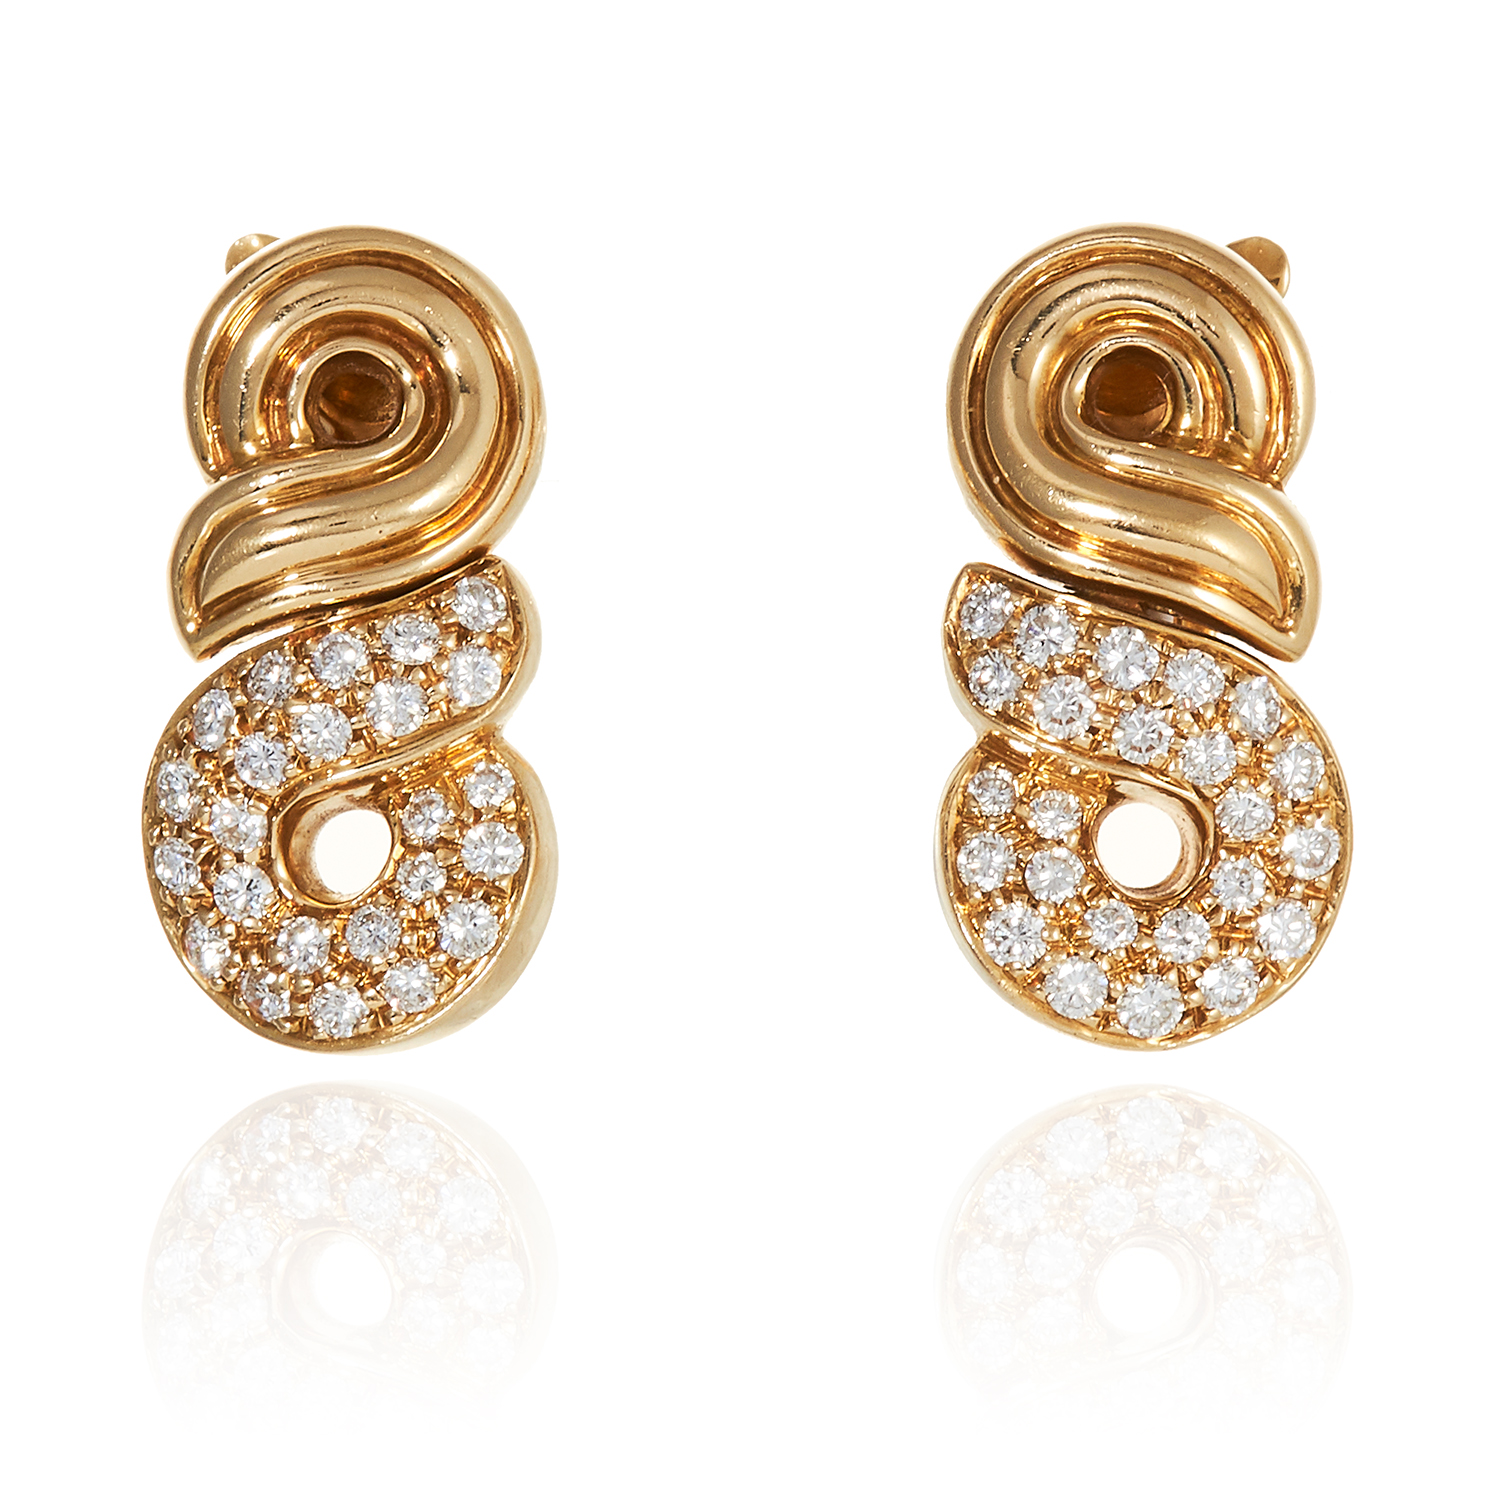 A VINTAGE DIAMOND EARRING AND NECKLACE SUITE, BOUCHERON in 18ct yellow gold, comprising of fancy - Bild 2 aus 2